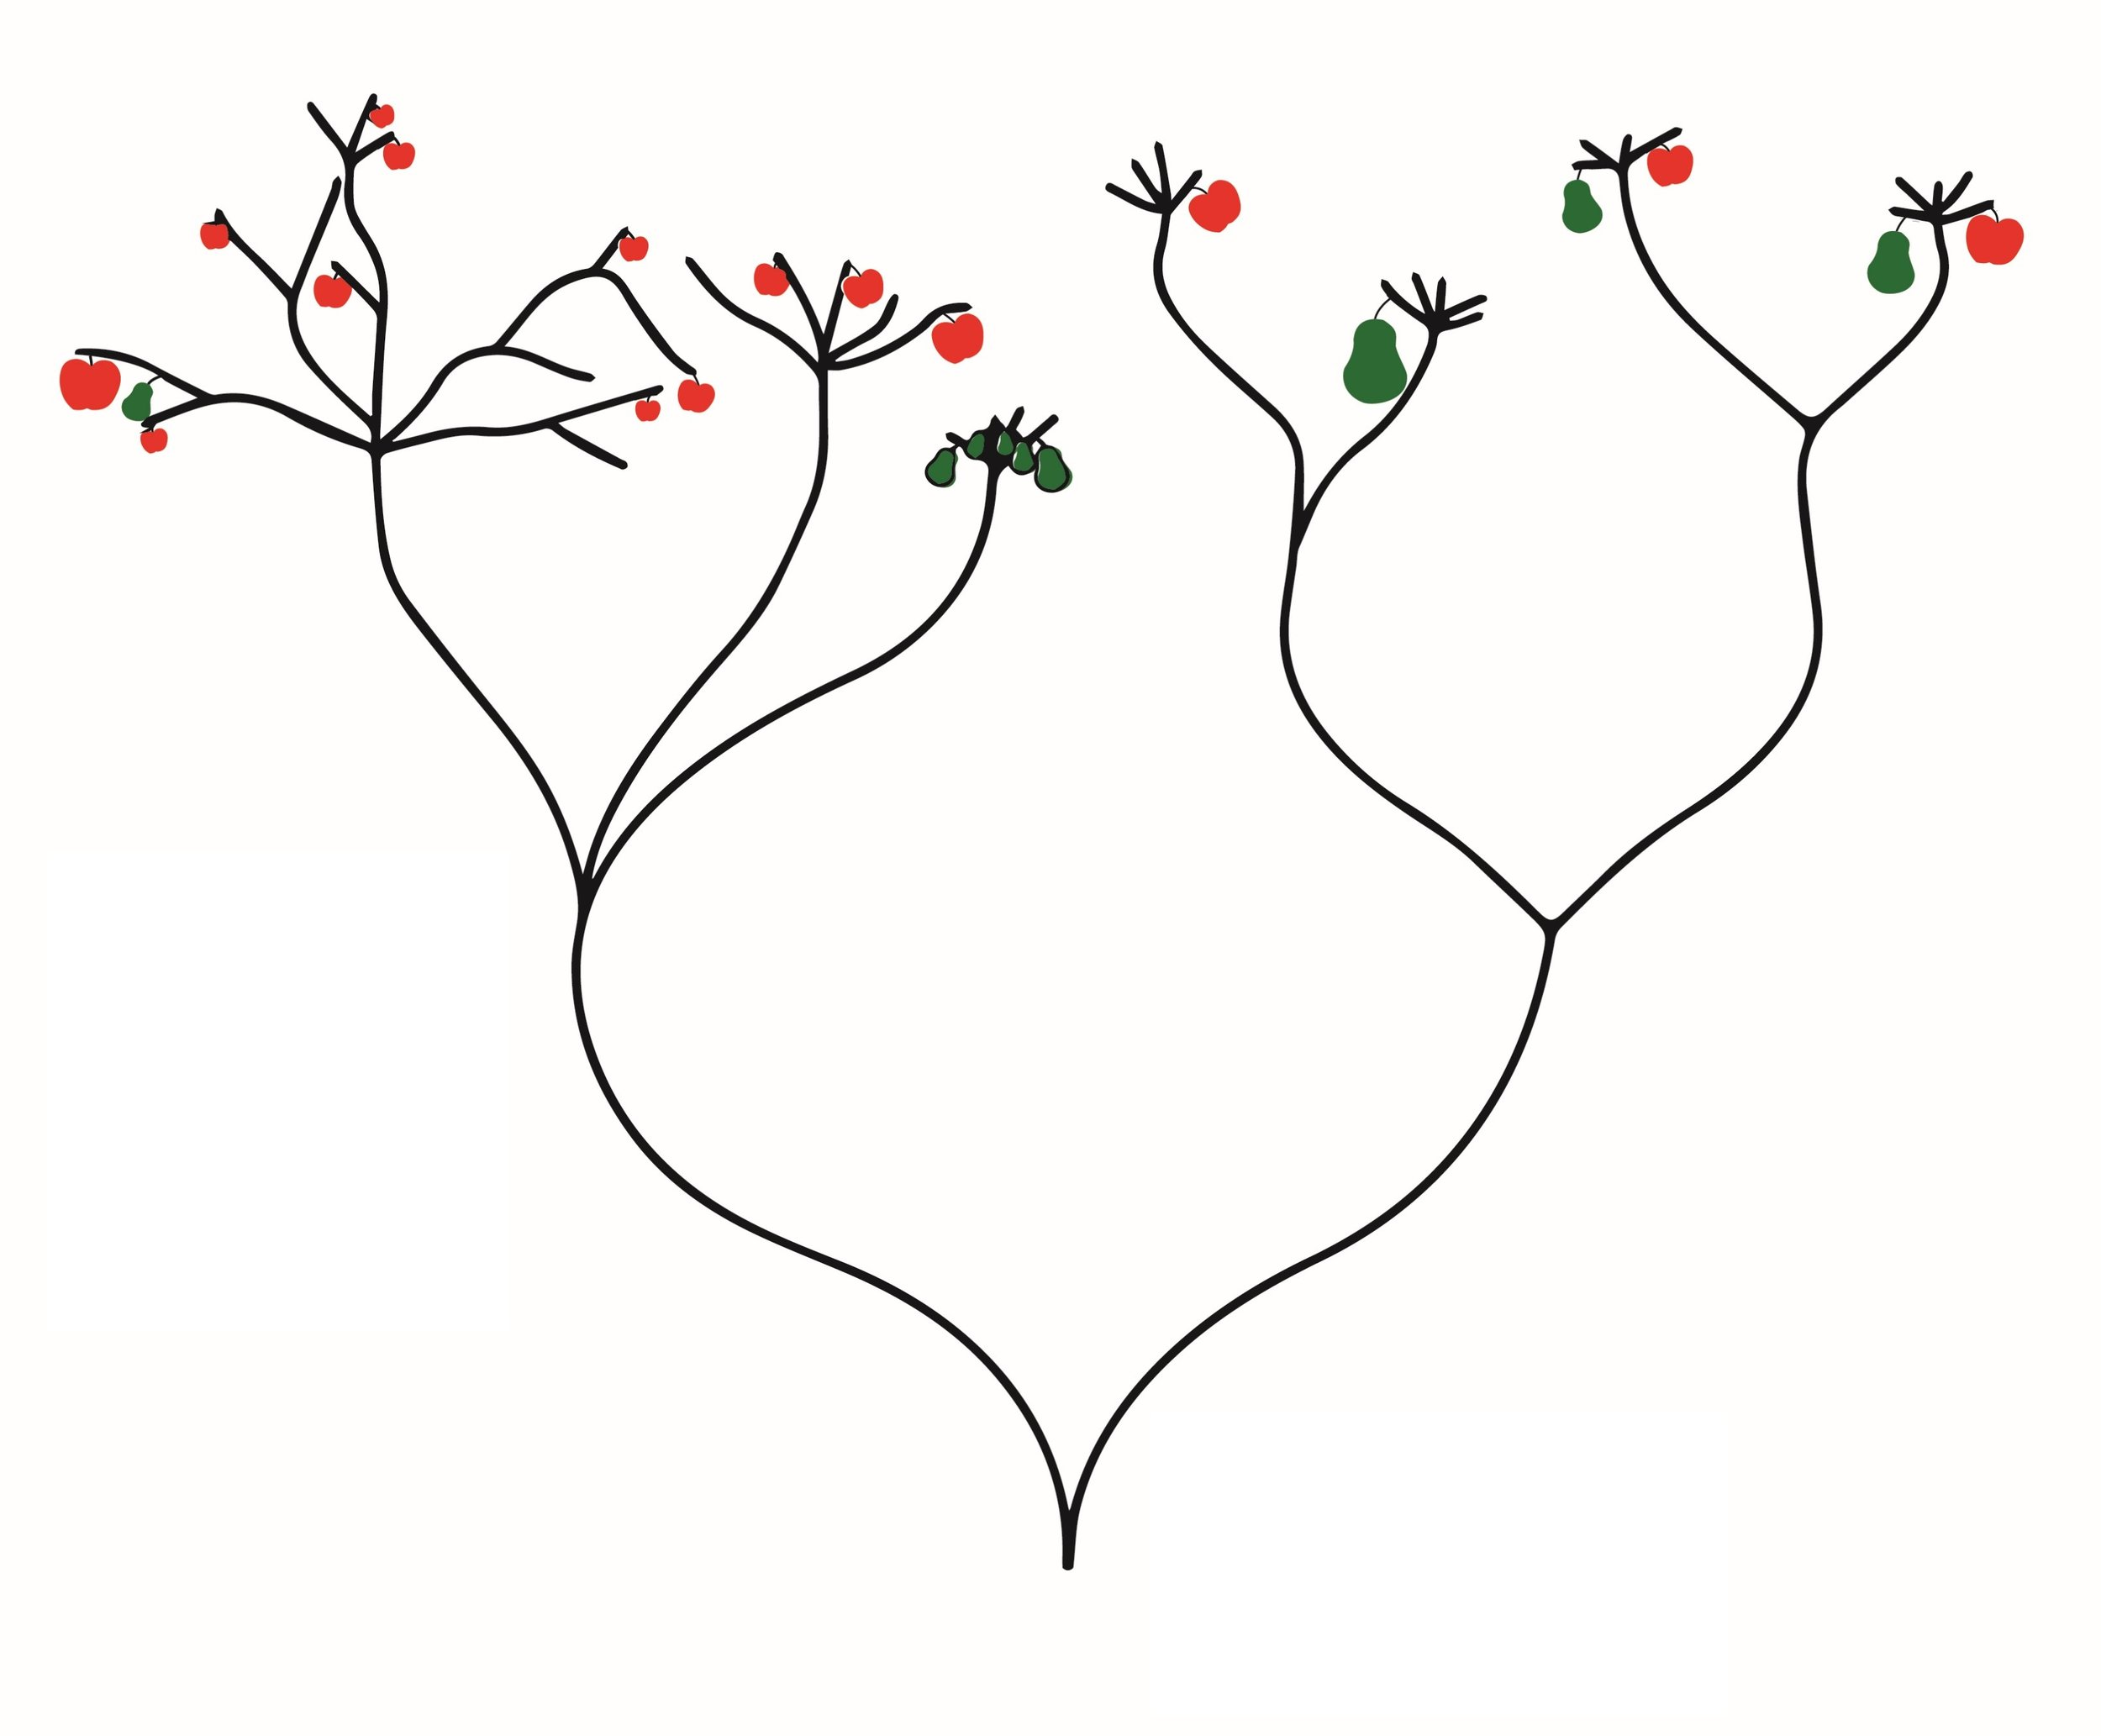 The tree of branching possibilities…